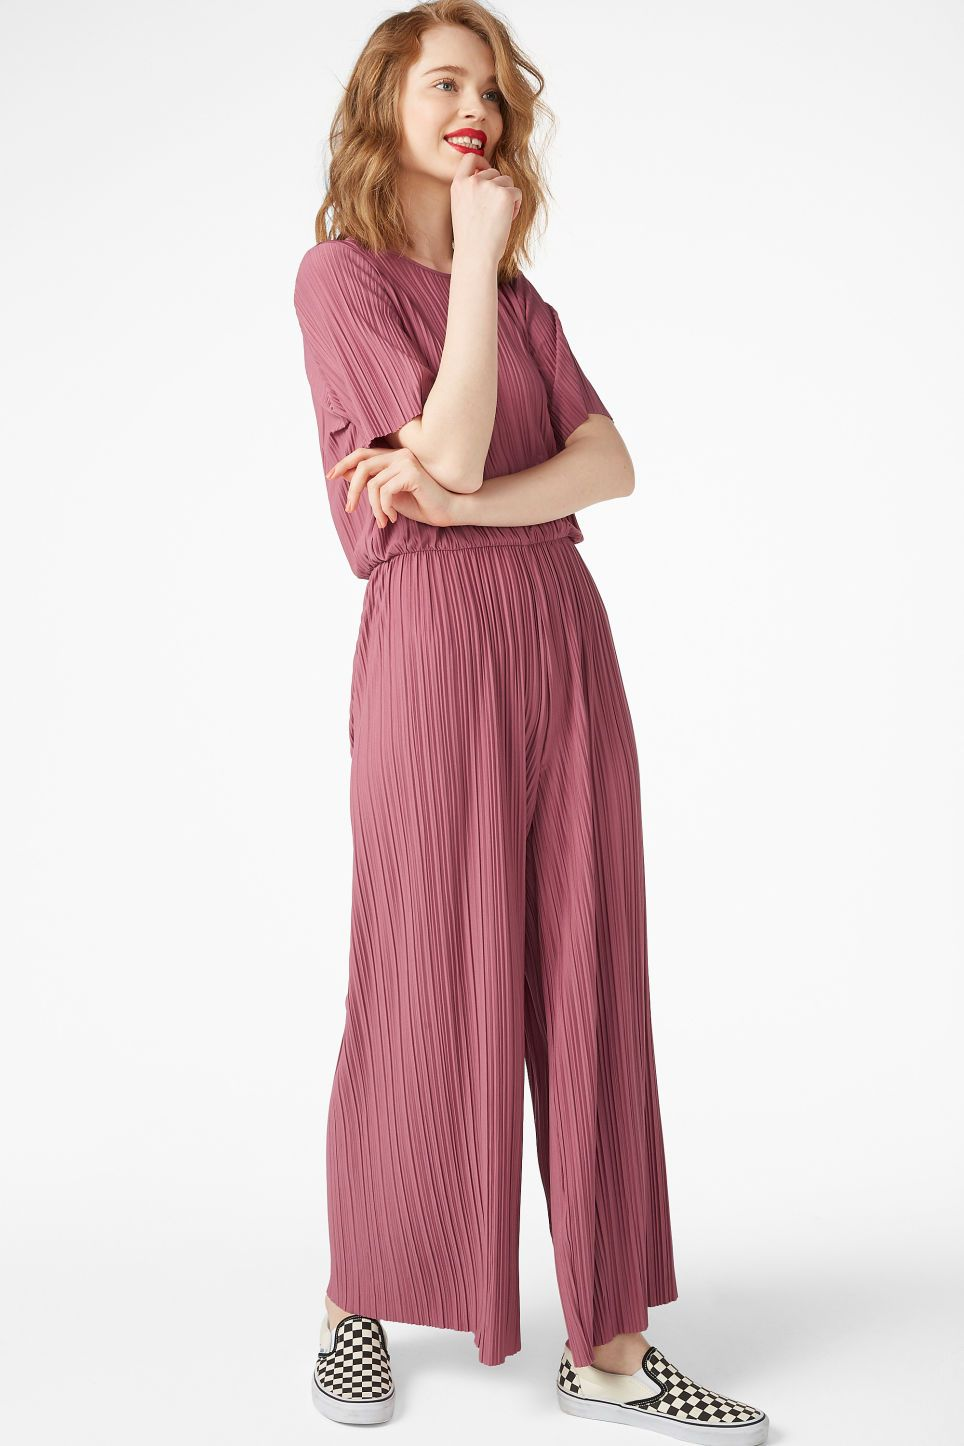 dd063c4e3ff A pleated jumpsuit with a classy fit and an elastic band in the waist.  Let s stay comfy while looking classy!